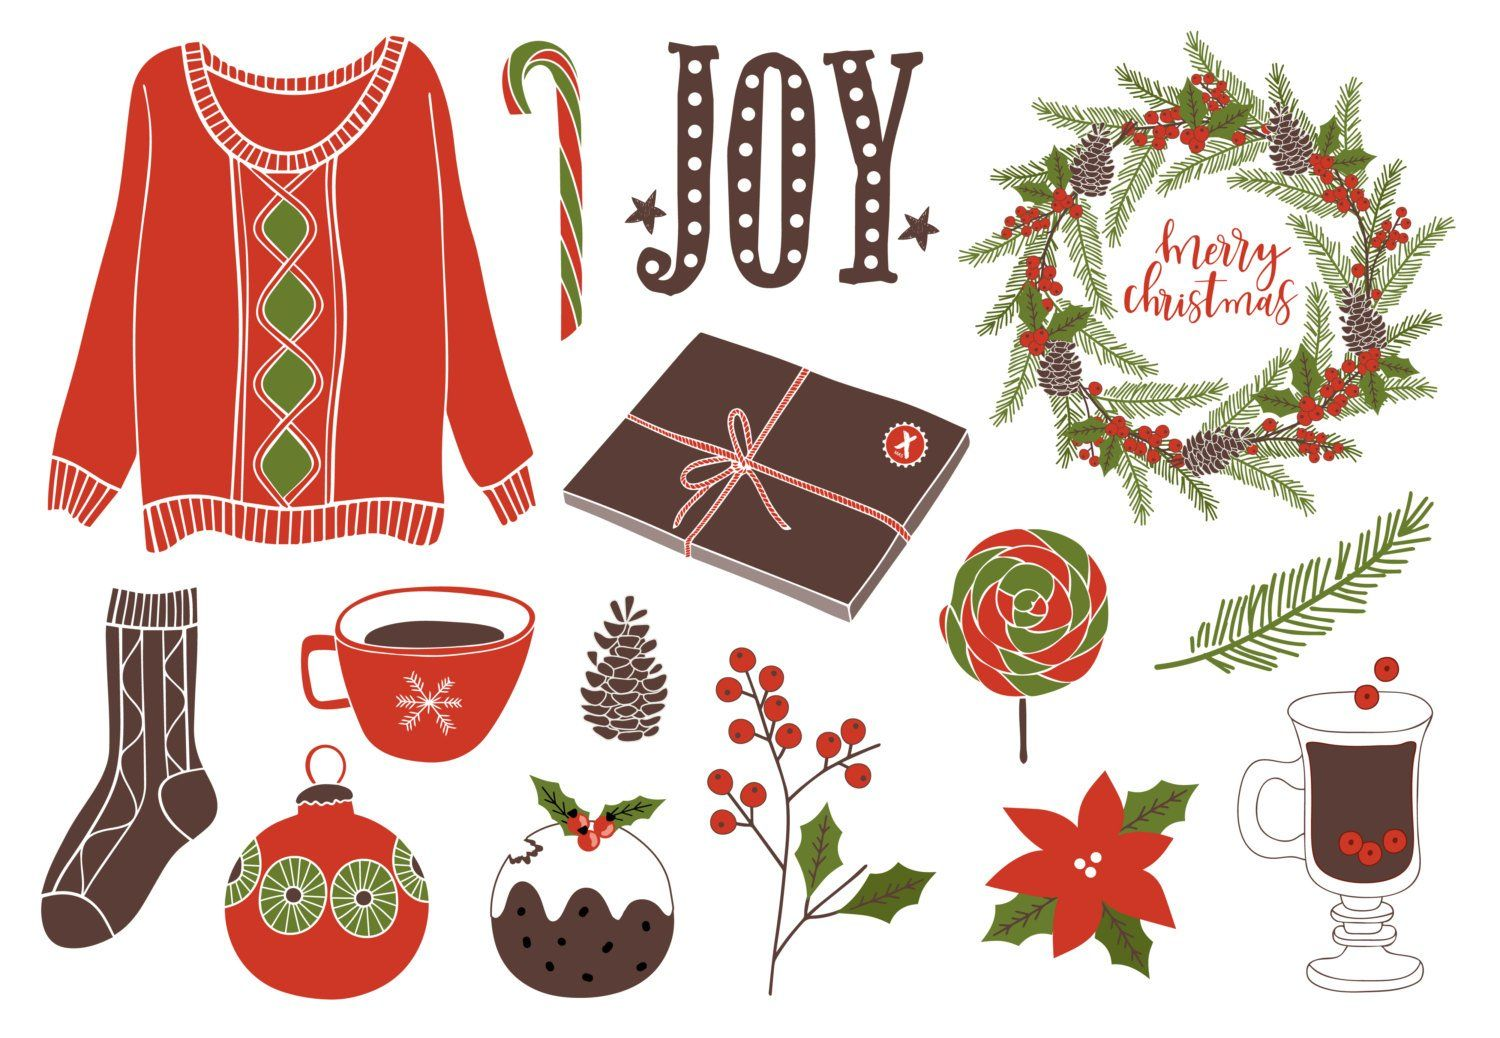 Christmas clipart / Wreath / Florals / holiday clipart.